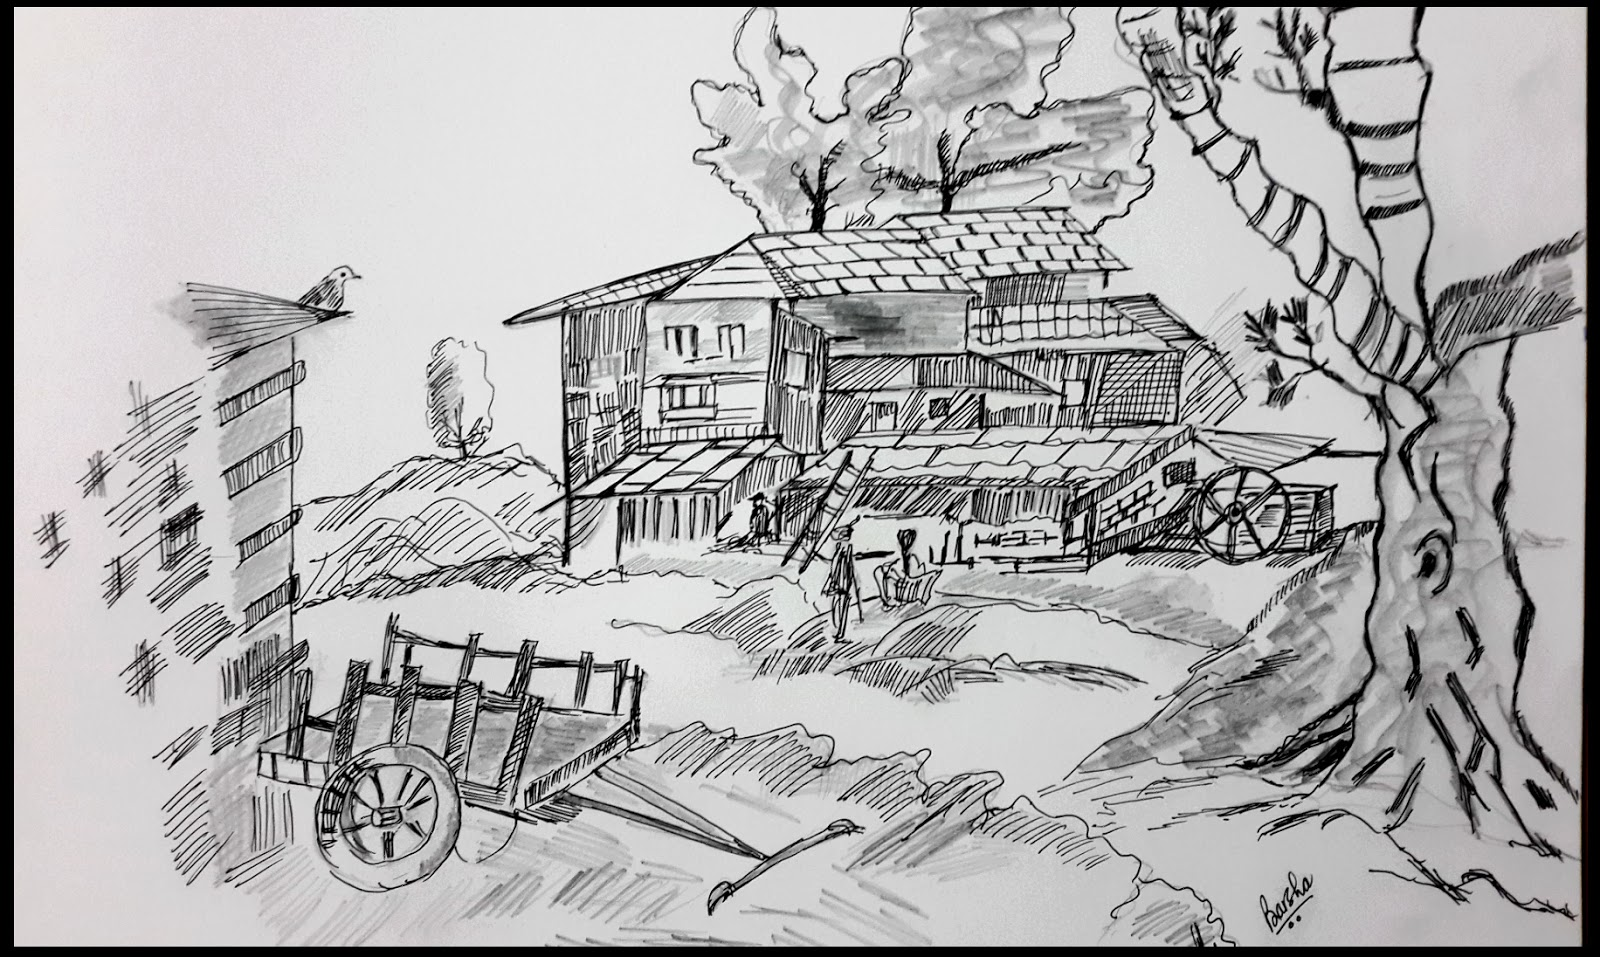 Barshau0026#39;s Painting Village Scene Ink-n-pencil On A3 Size Sketchbook